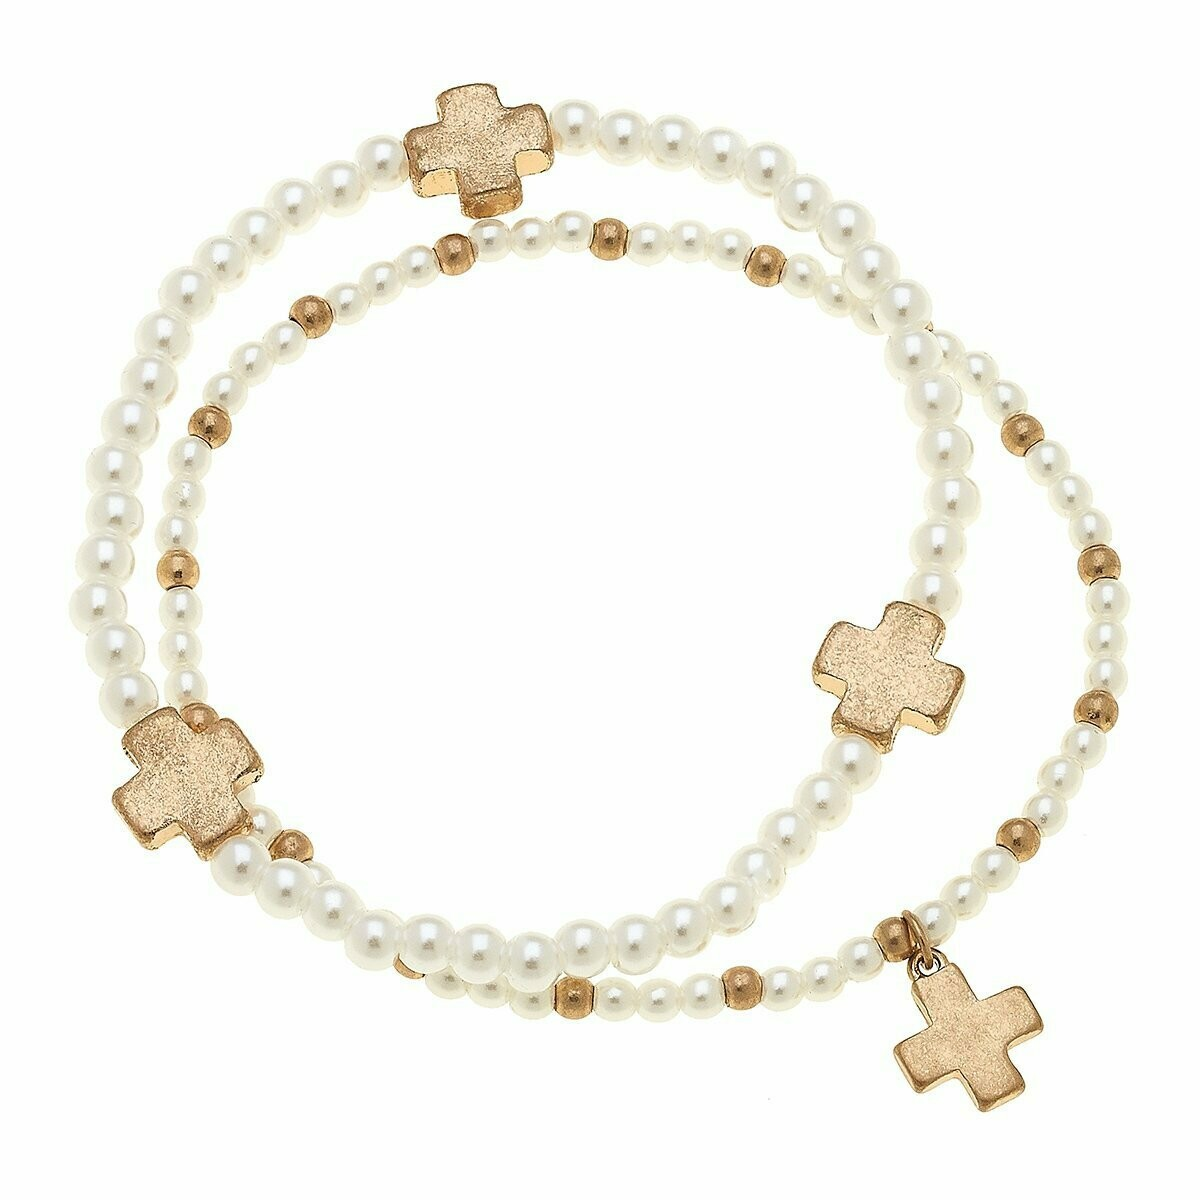 Aria Layered Pearl Bracelets In Worn Gold Crosses (Set of 2)